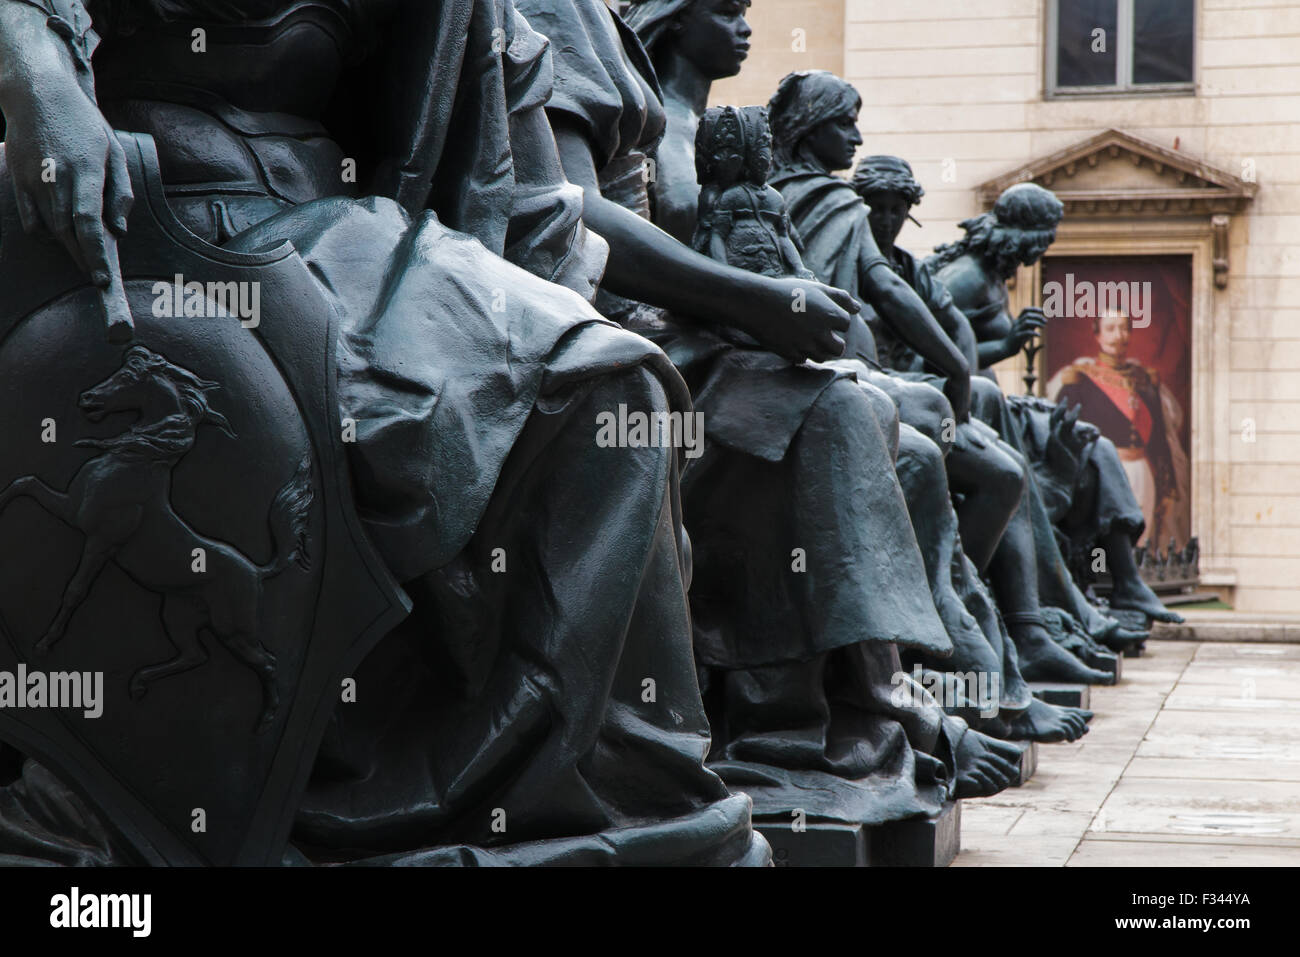 statues outside the Musée d'Orsay, Paris, France - Stock Image